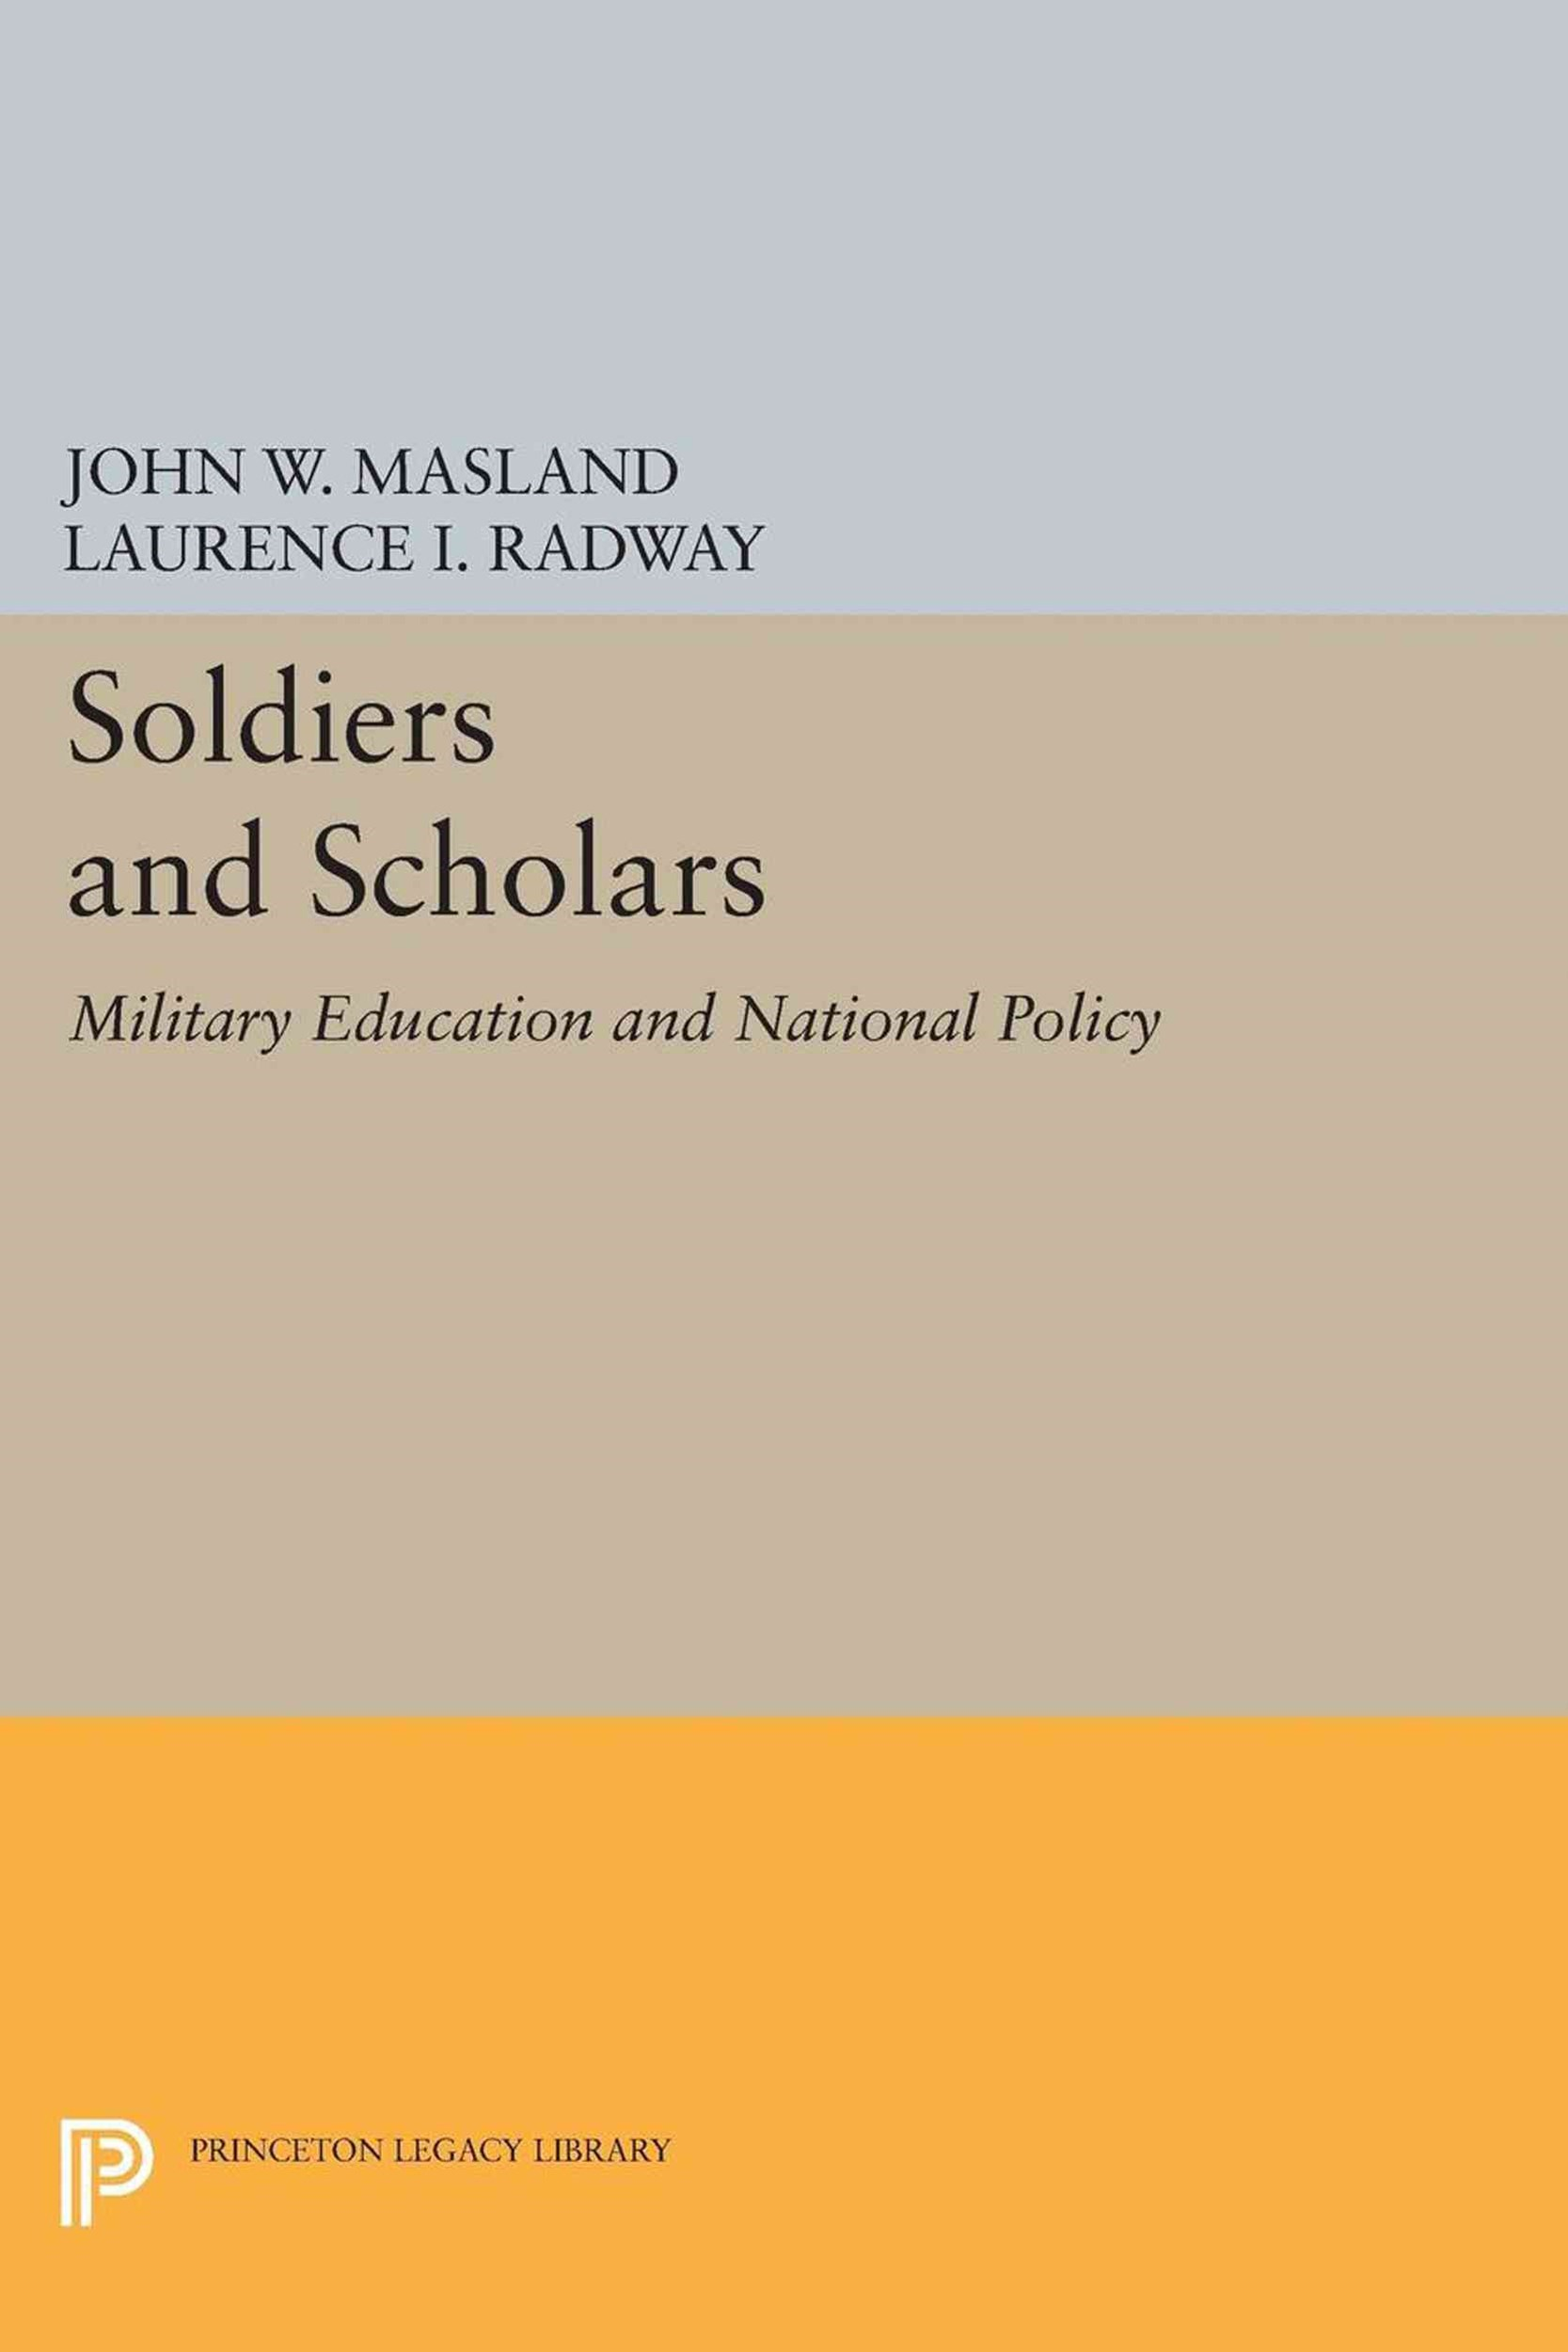 Soldiers and Scholars